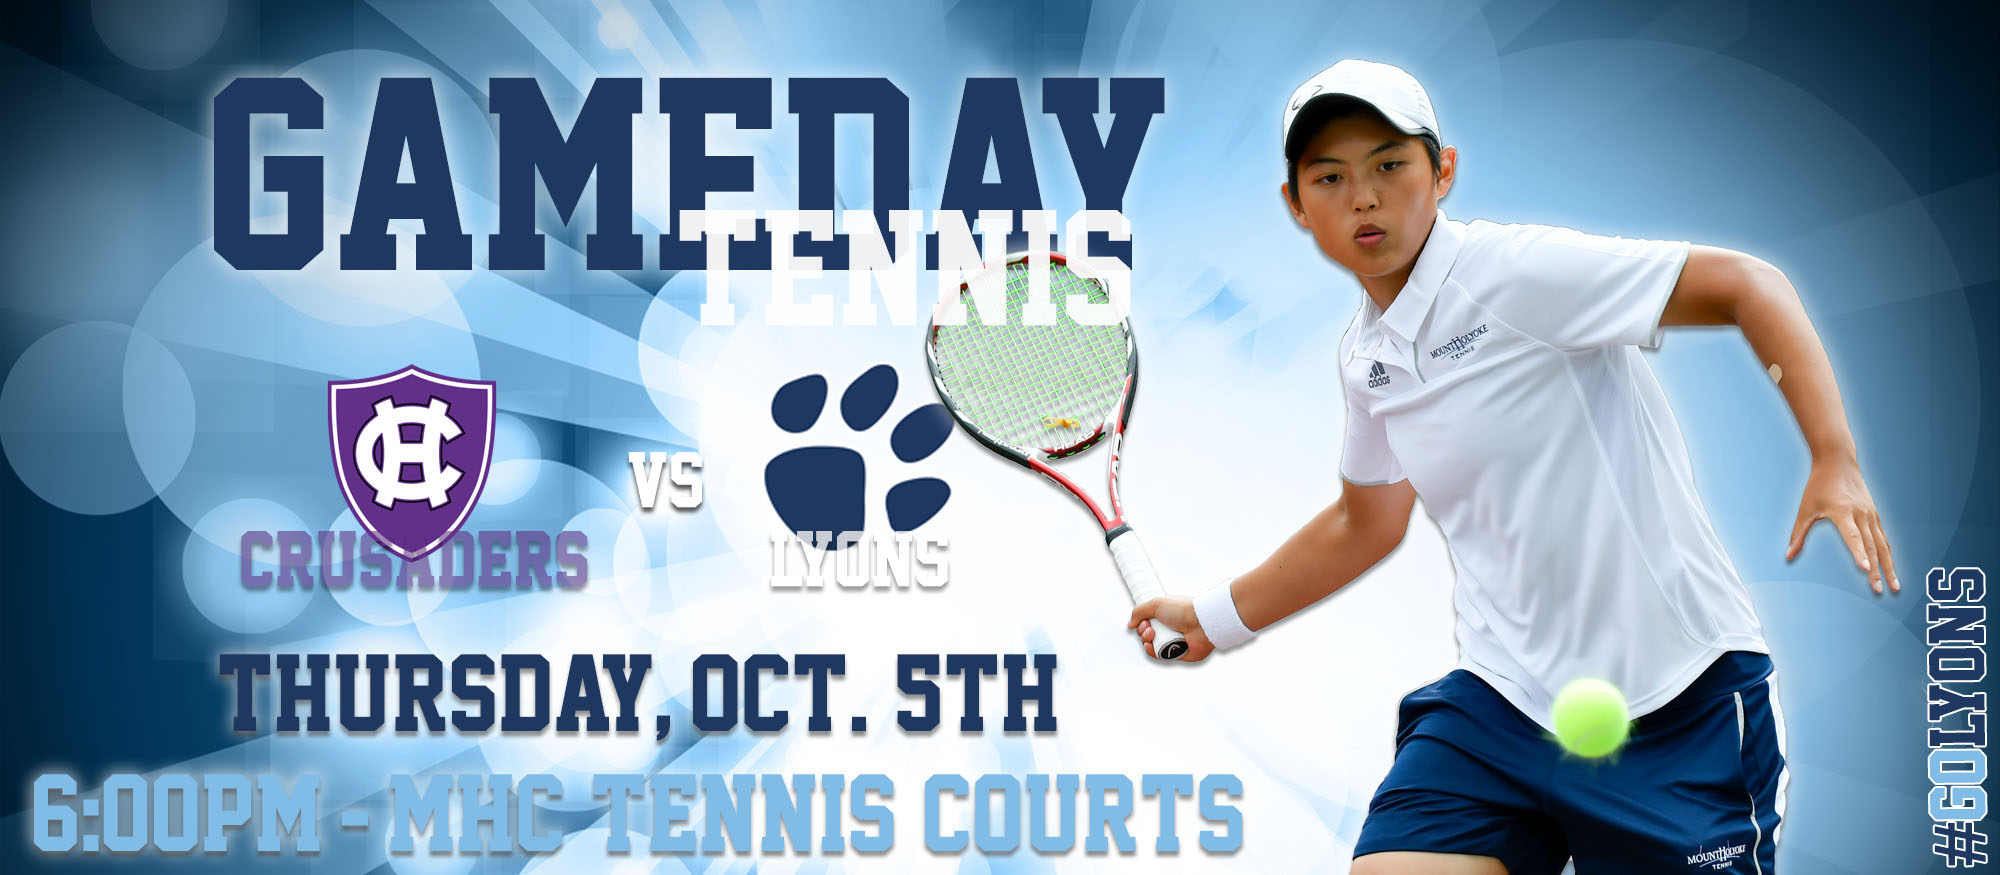 Gameday graphic promoting Thursday, October 5th tennis home match against Holy Cross at 6pm.